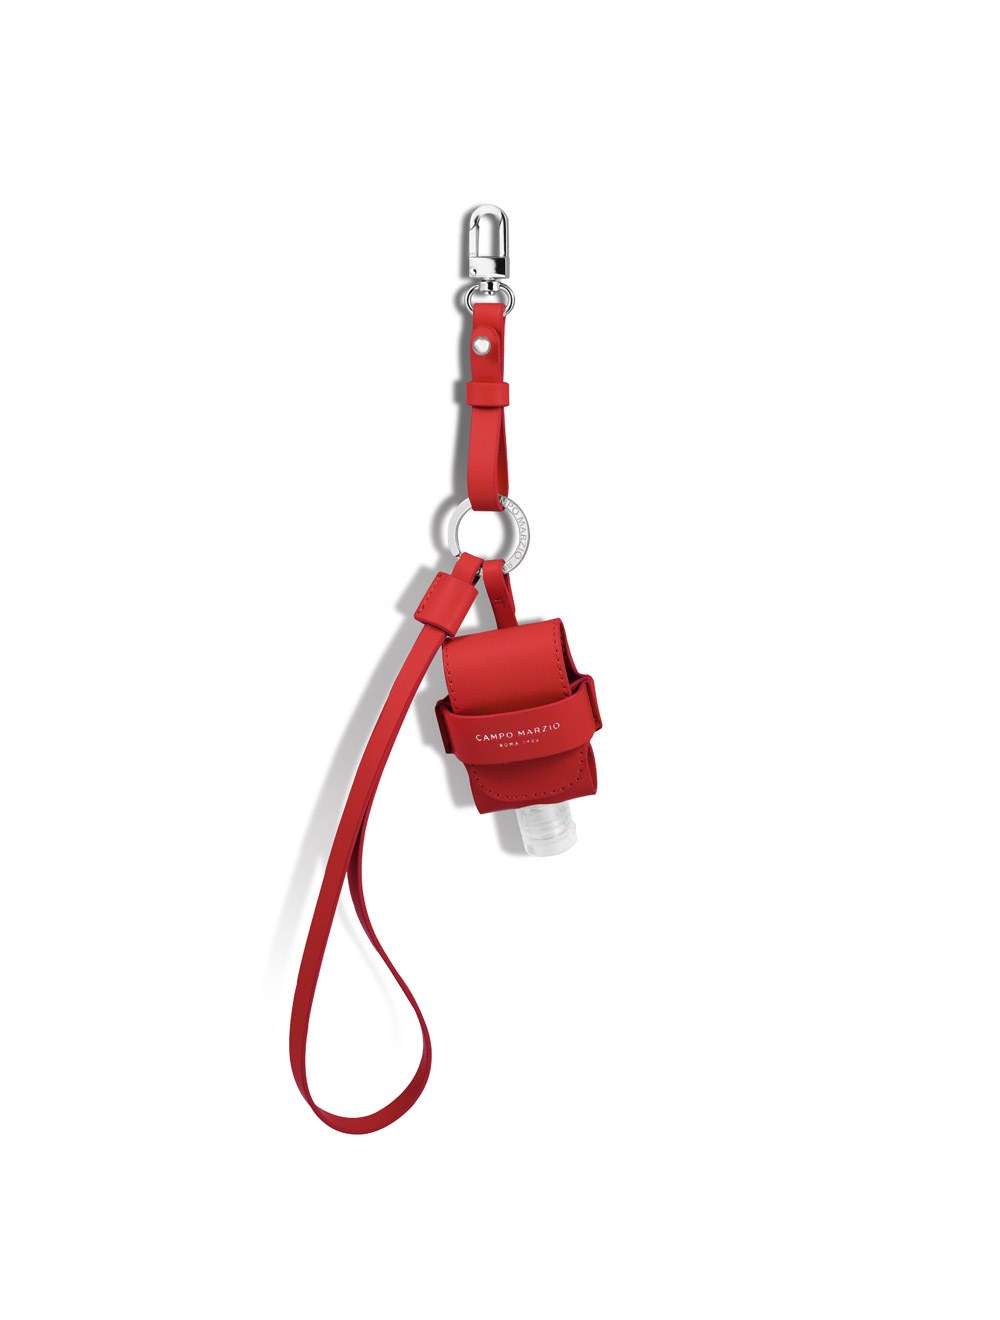 Keychain with Mini Pouch Dispenser - Cherry Red